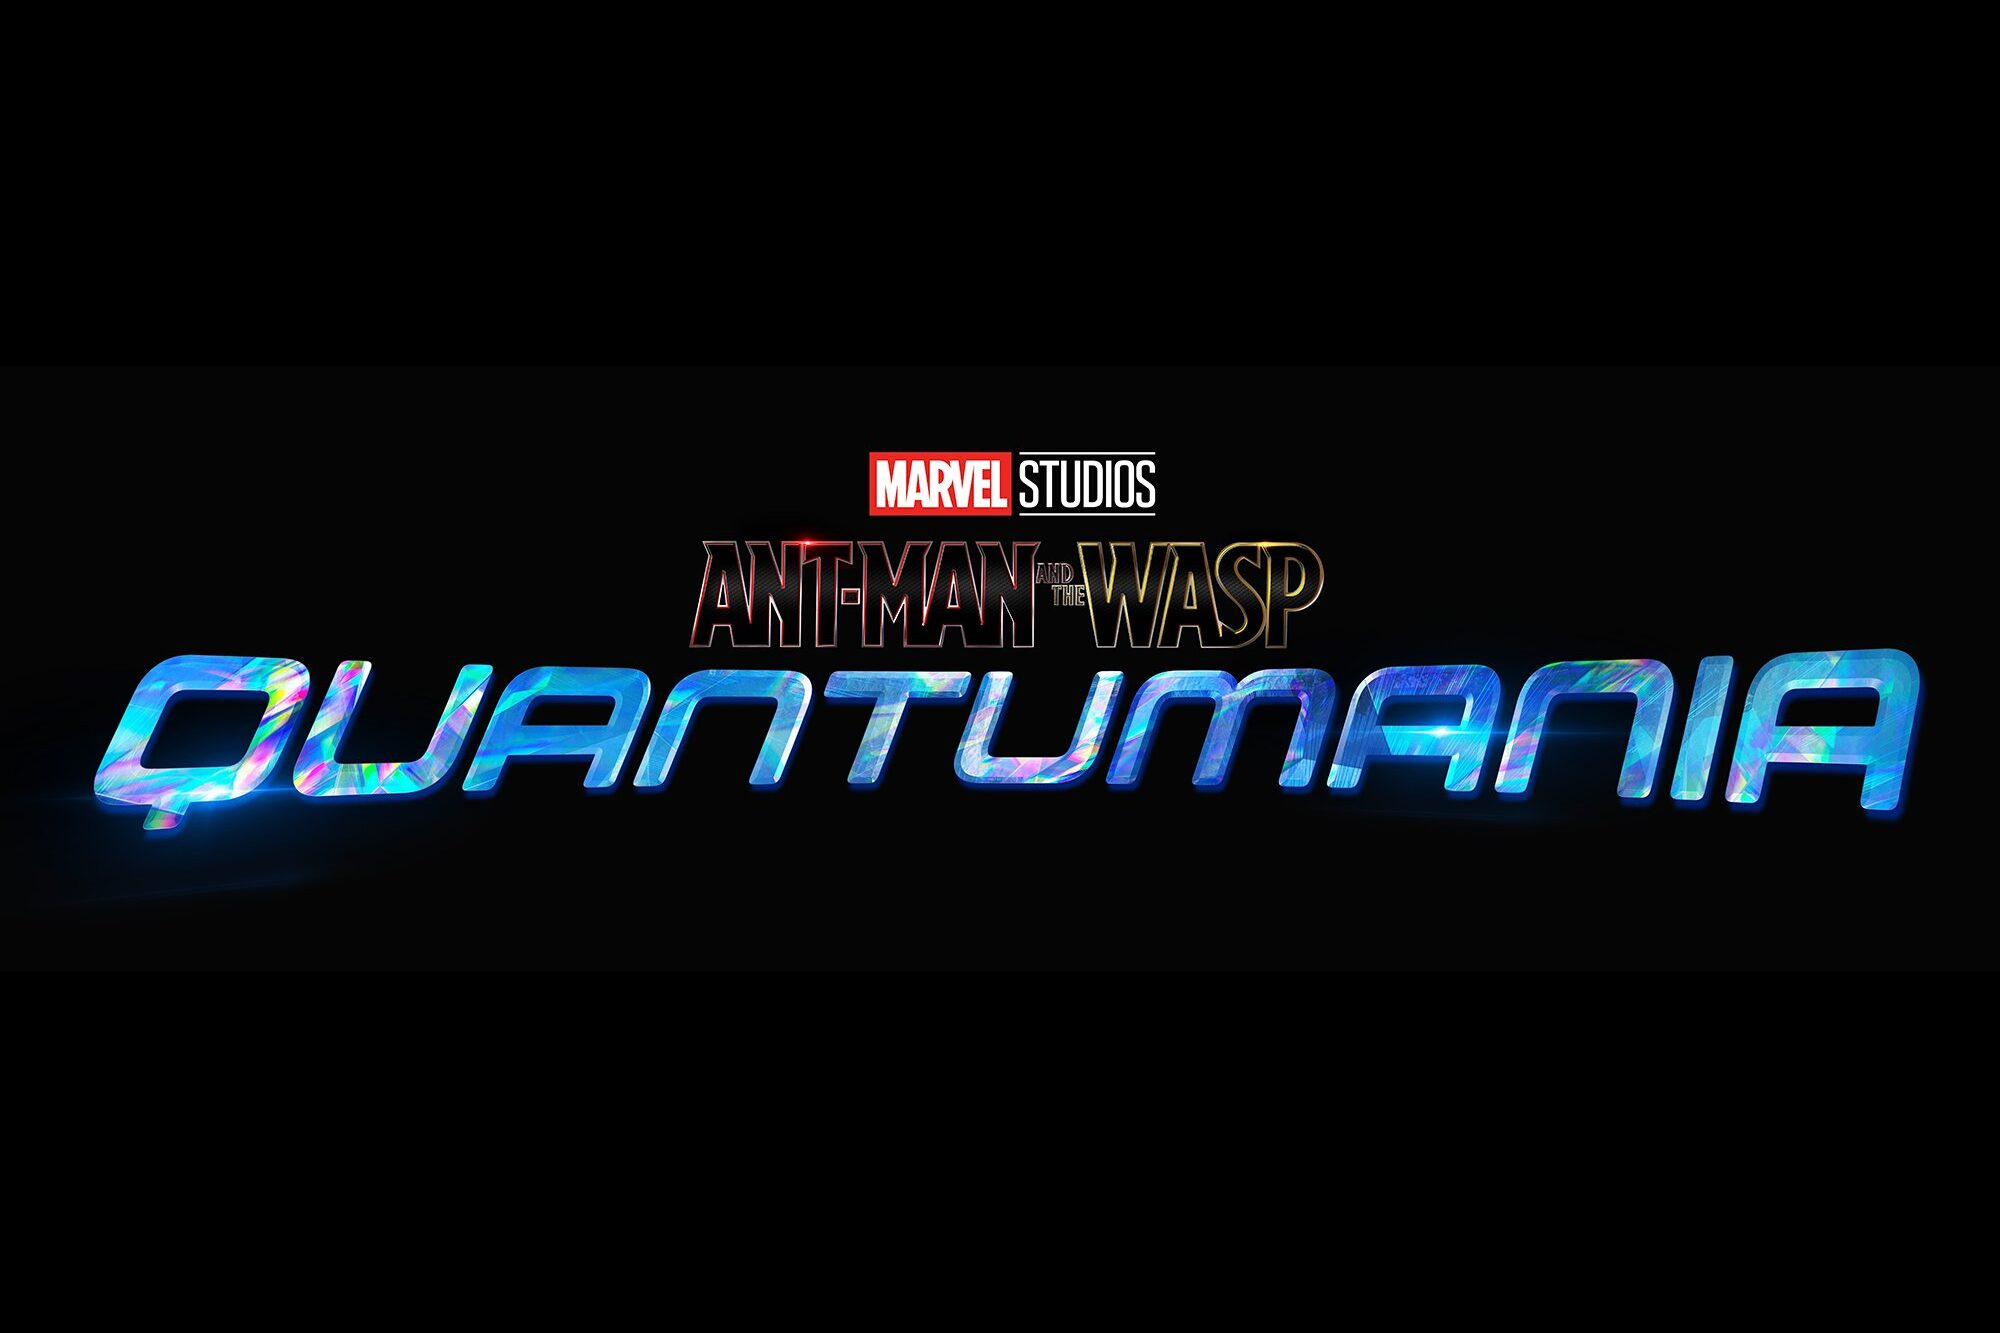 Ant-Man 3 And The Wasp: Quantumania